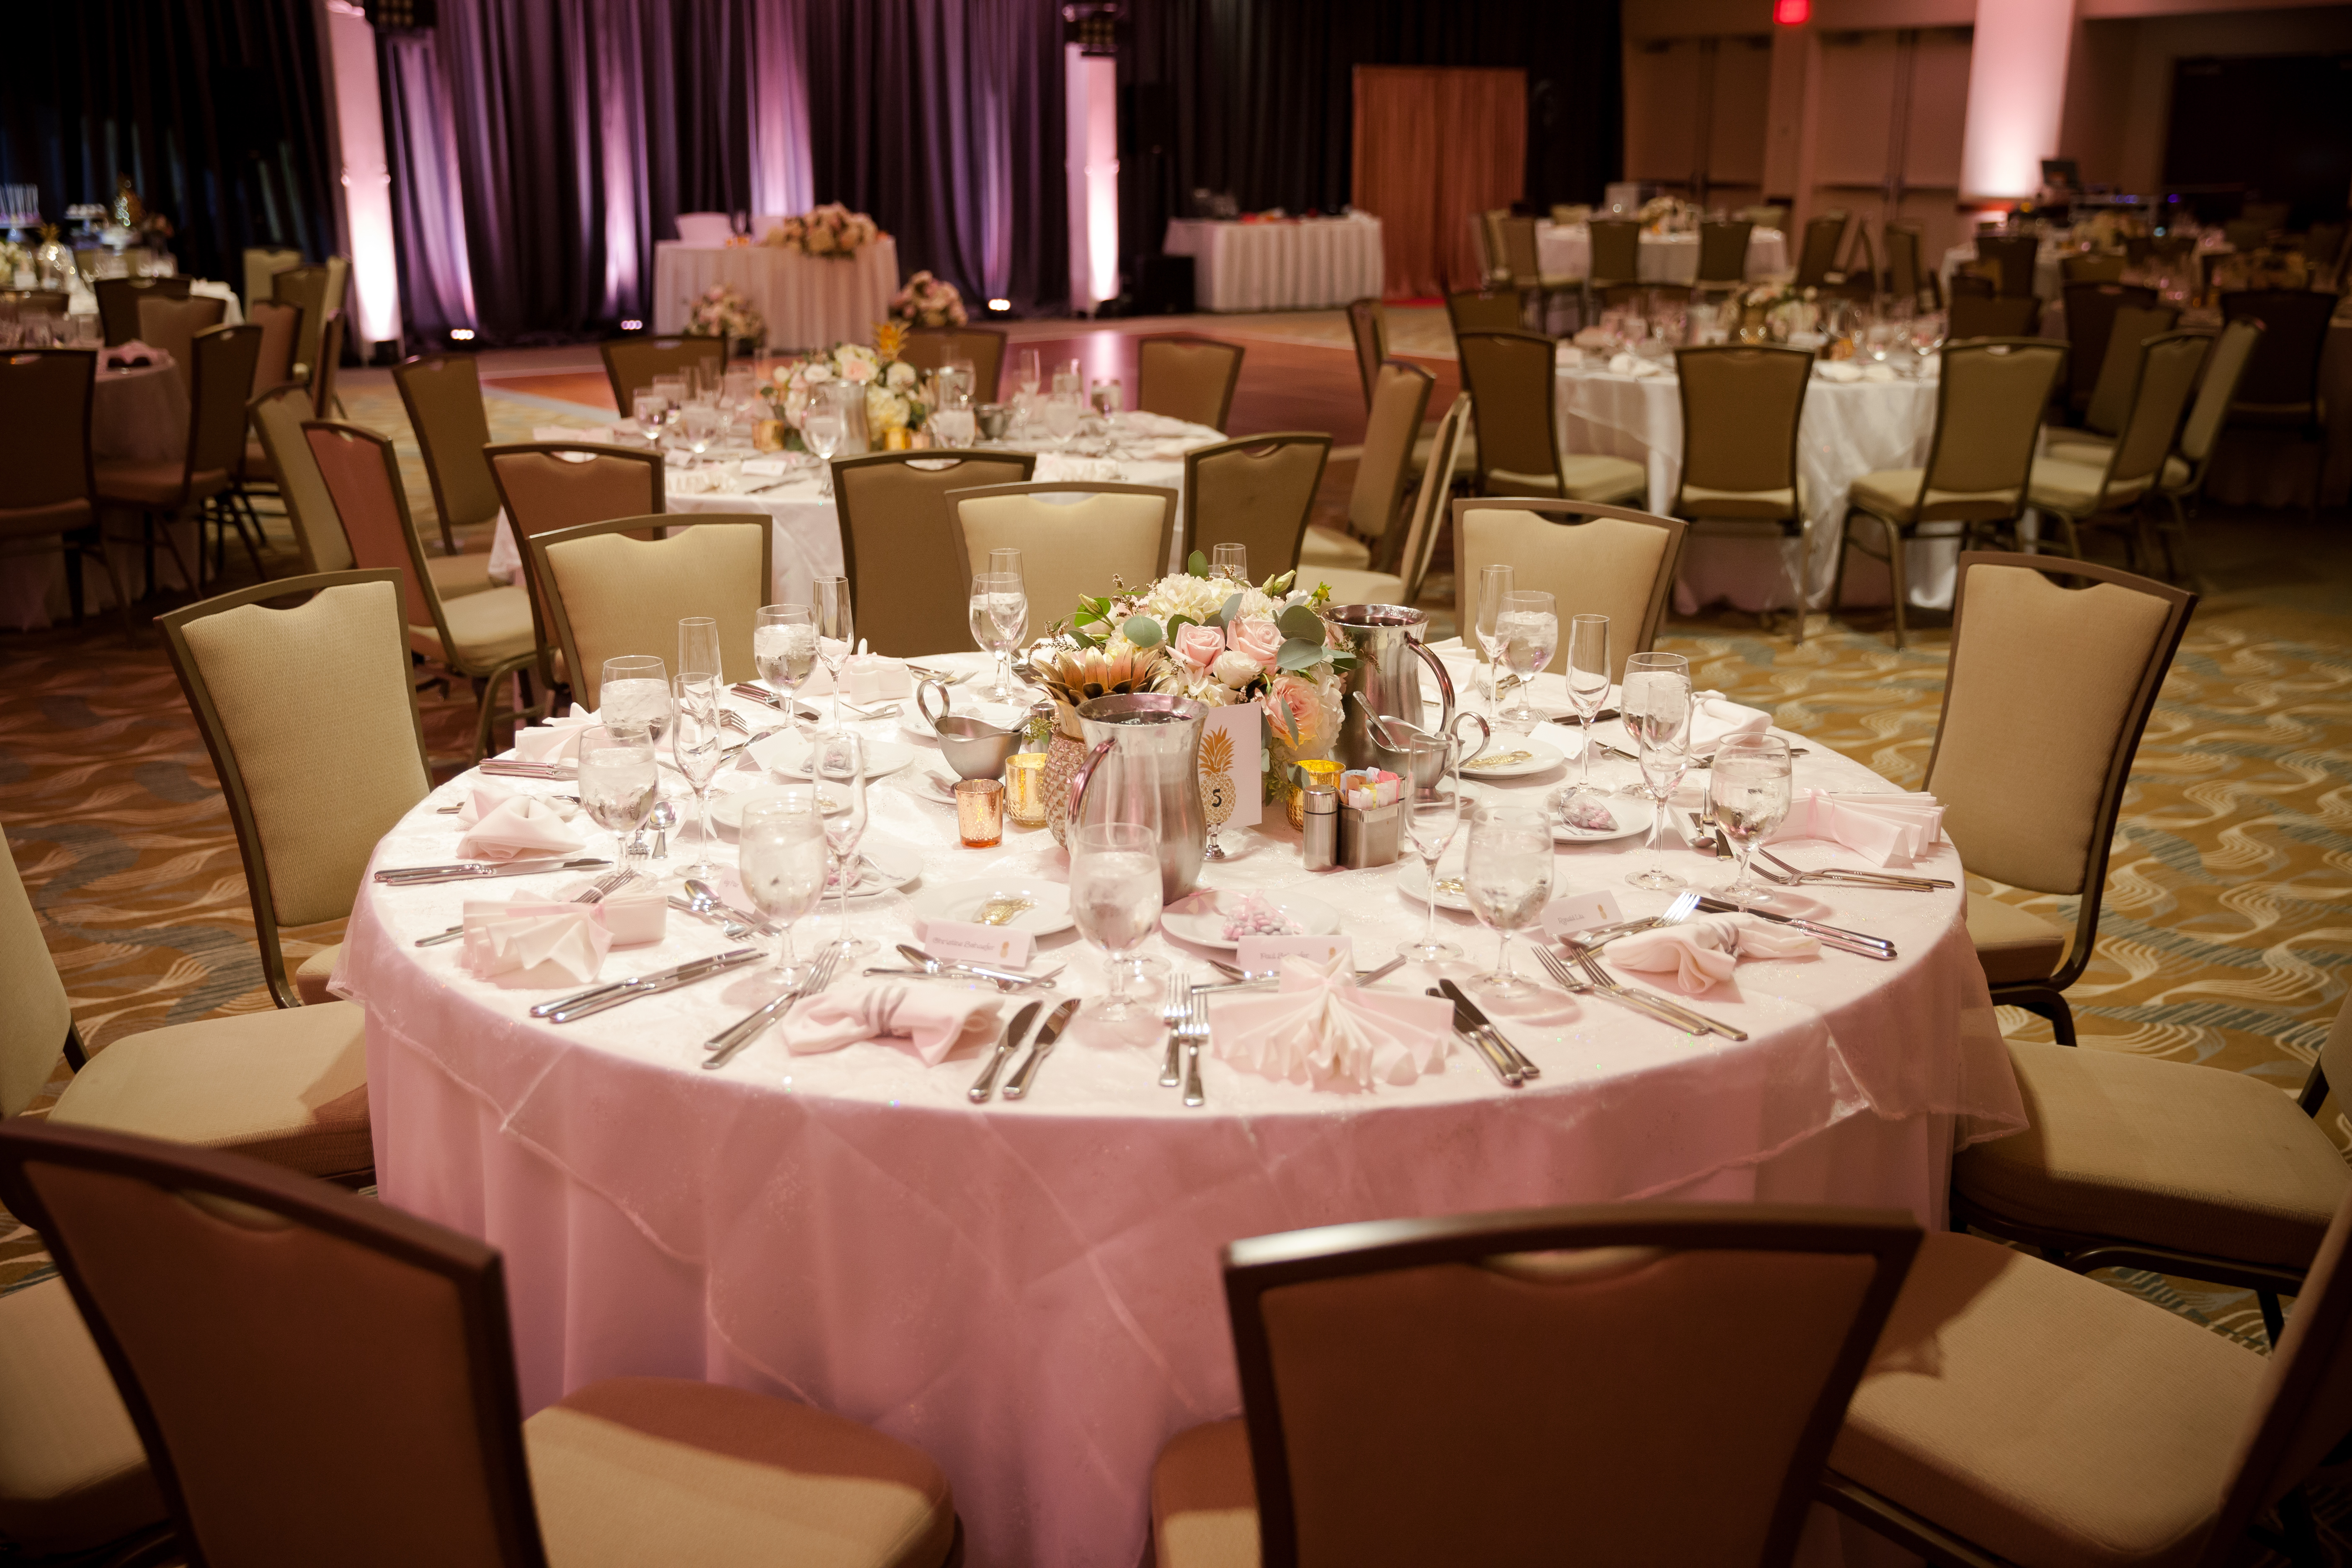 Table set beautifully for wedding reception